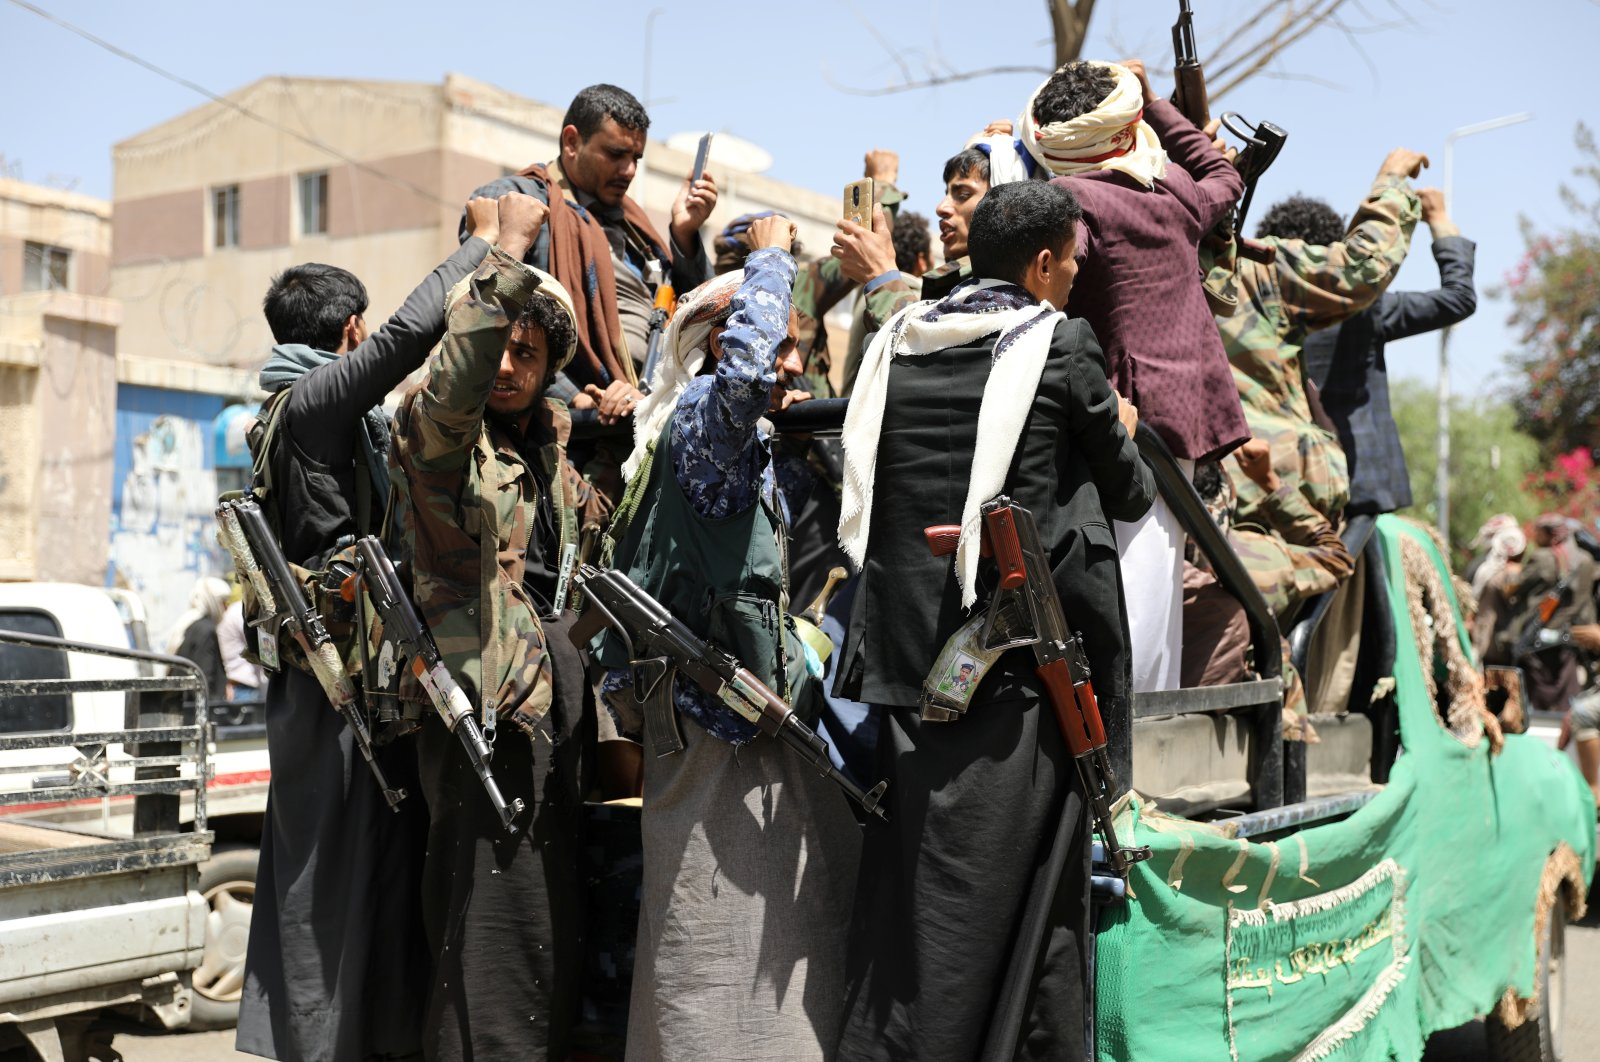 Armed Houthi rebels ride on the back of a truck outside a hospital in Sanaa, Yemen, Wednesday, April 8, 2020. (REUTERS Photo)